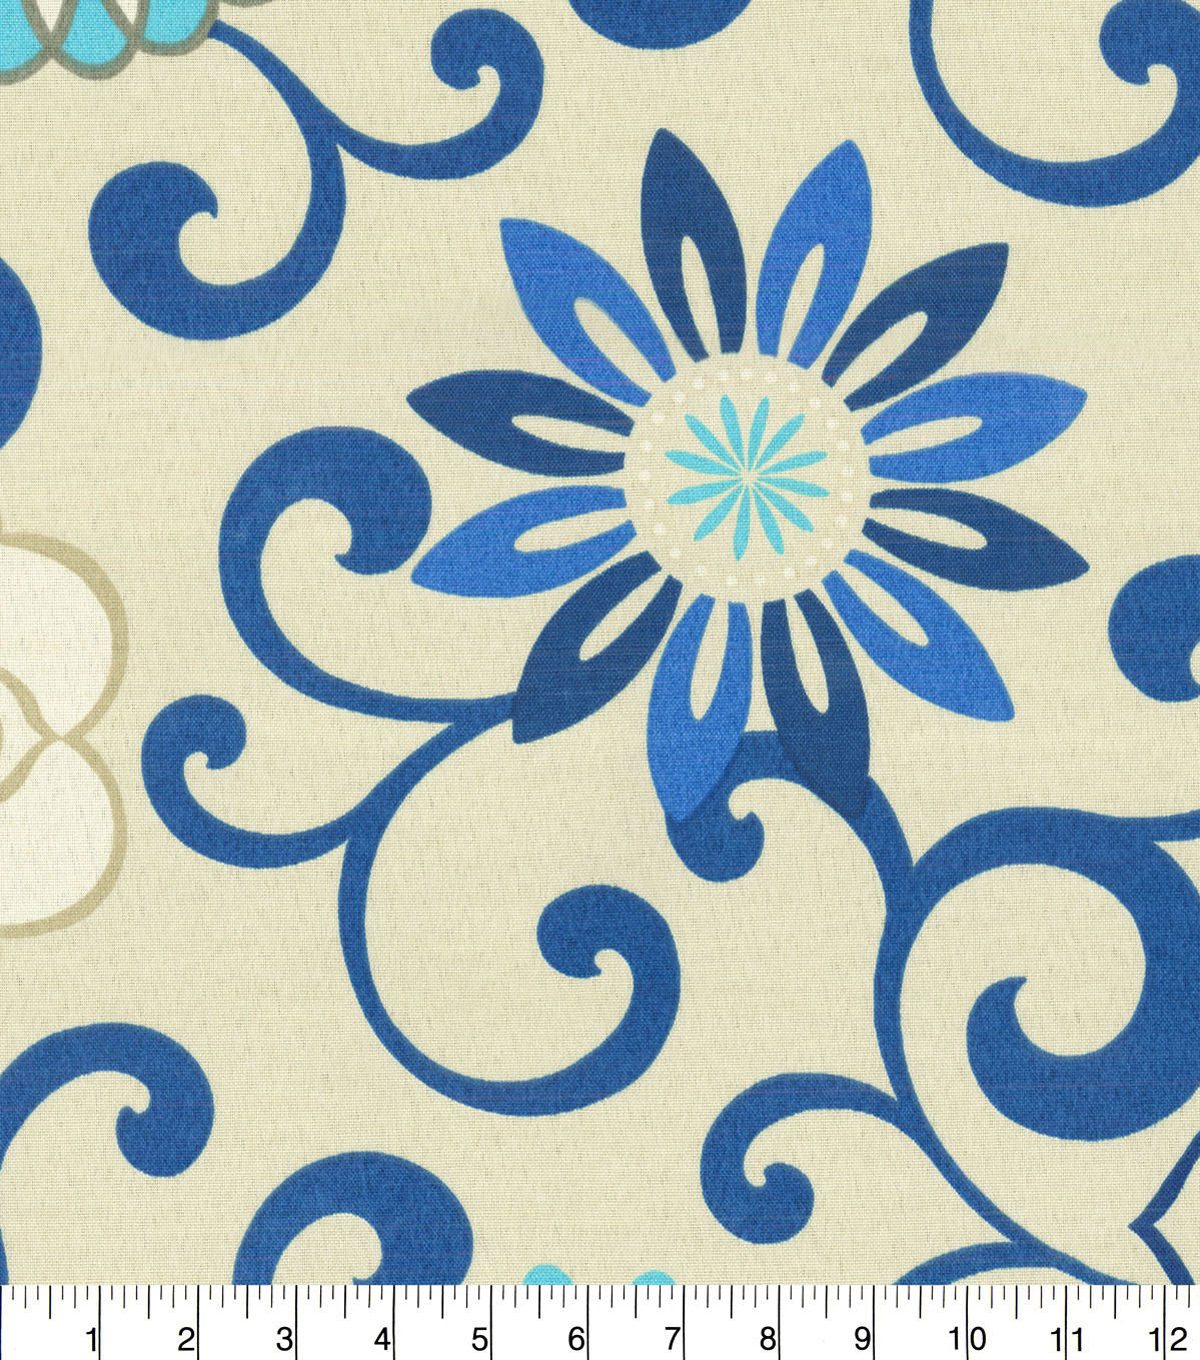 Waverly Upholstery Fabric 13x13\u0022 Swatch-Pom Pom Play Larkspur